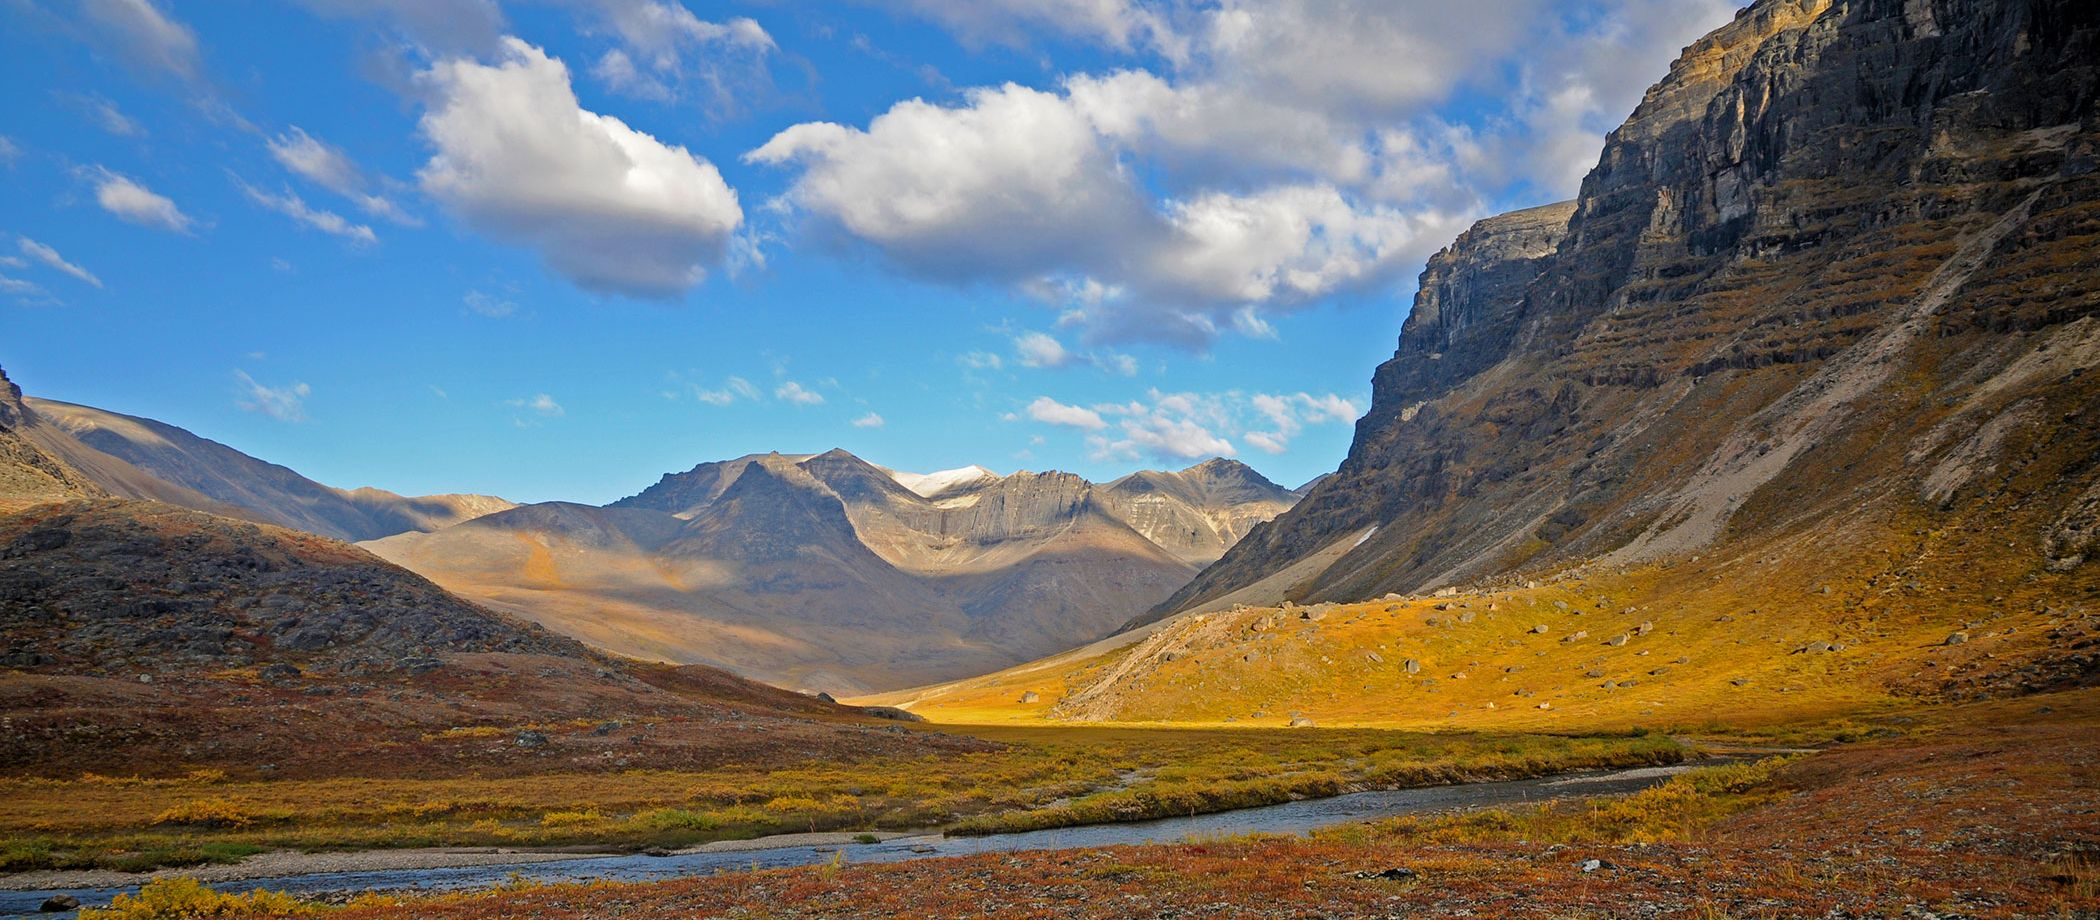 Gates of the Arctic Nationalpark: Berglandschaft